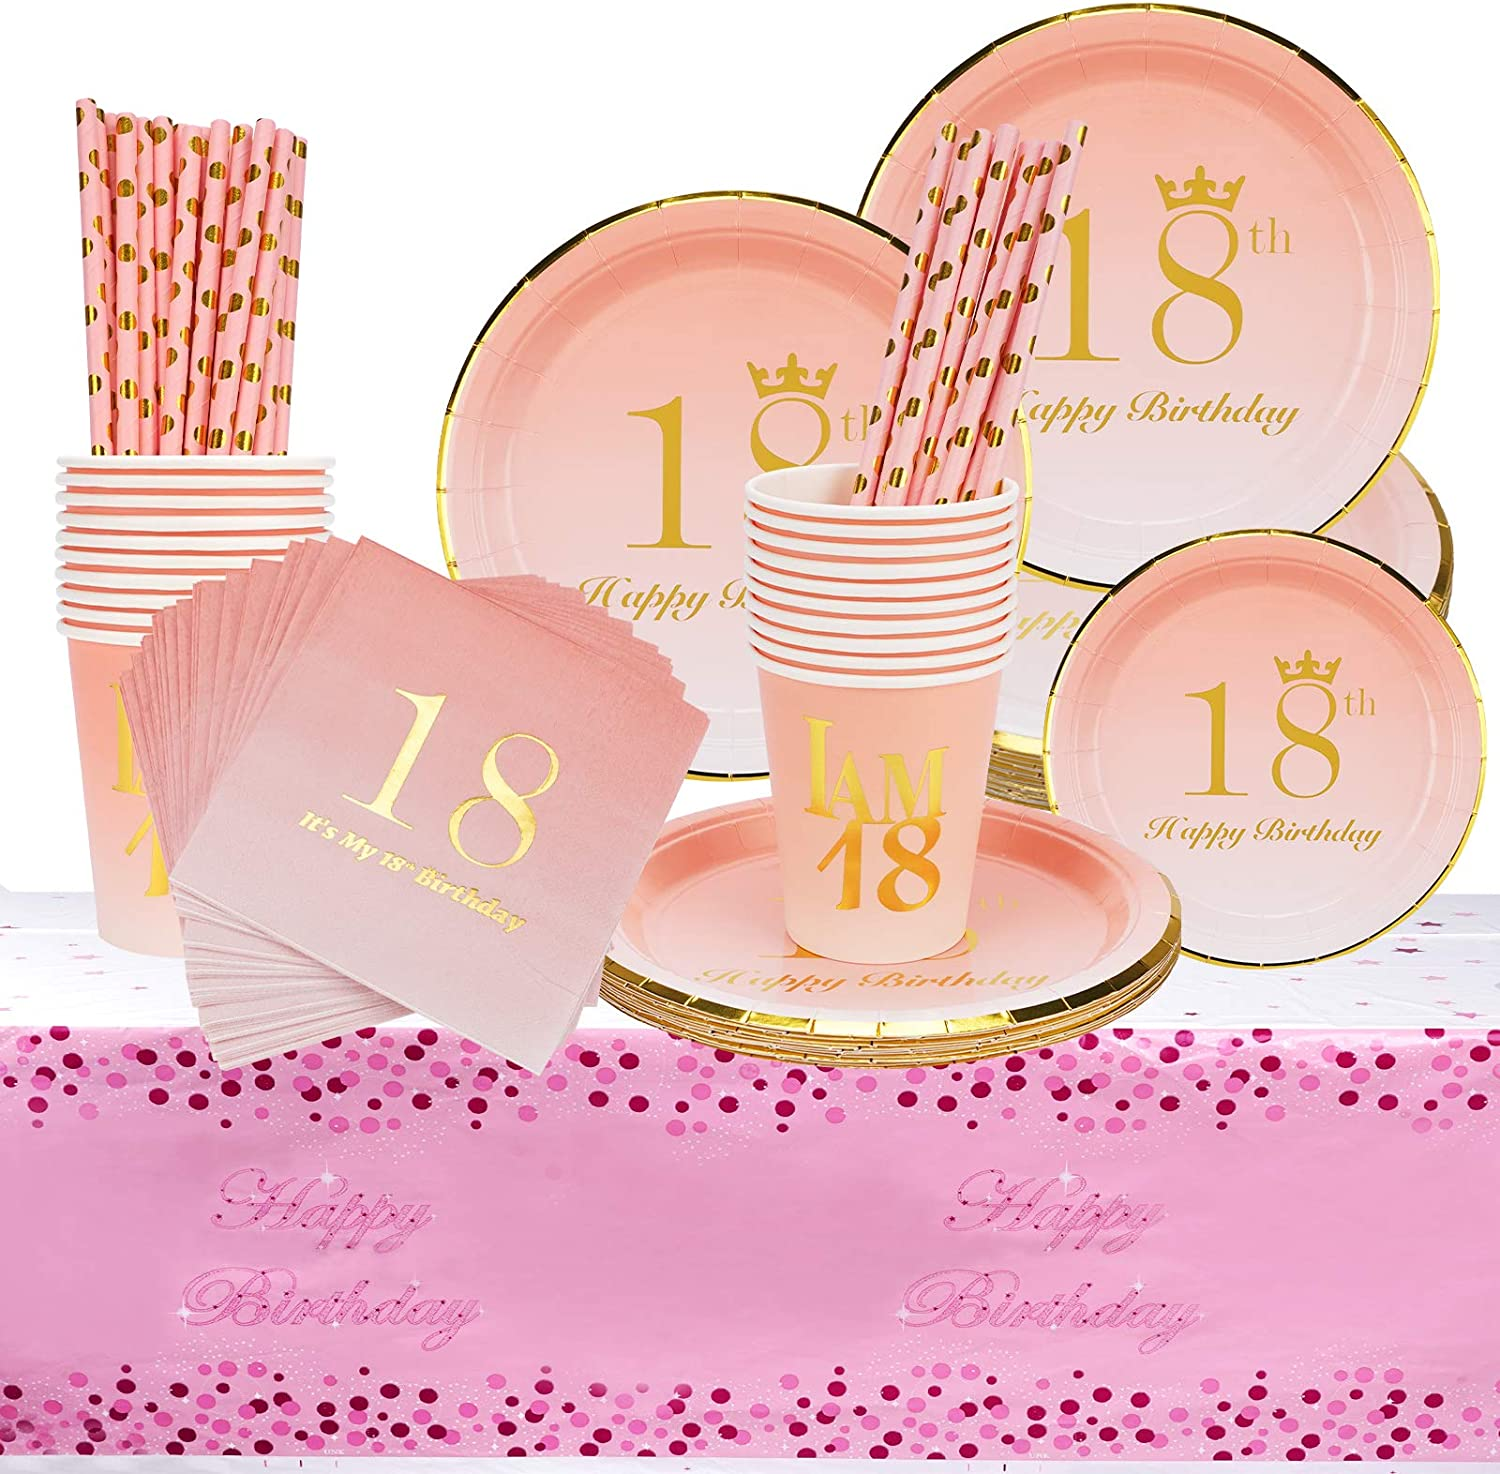 Serves 24 Cups Straws Disposable Tableware Includes Plates Napkins 18th Birthday Decorations Party Supplies Set Tablecloth for Girls 18 Birthday Party